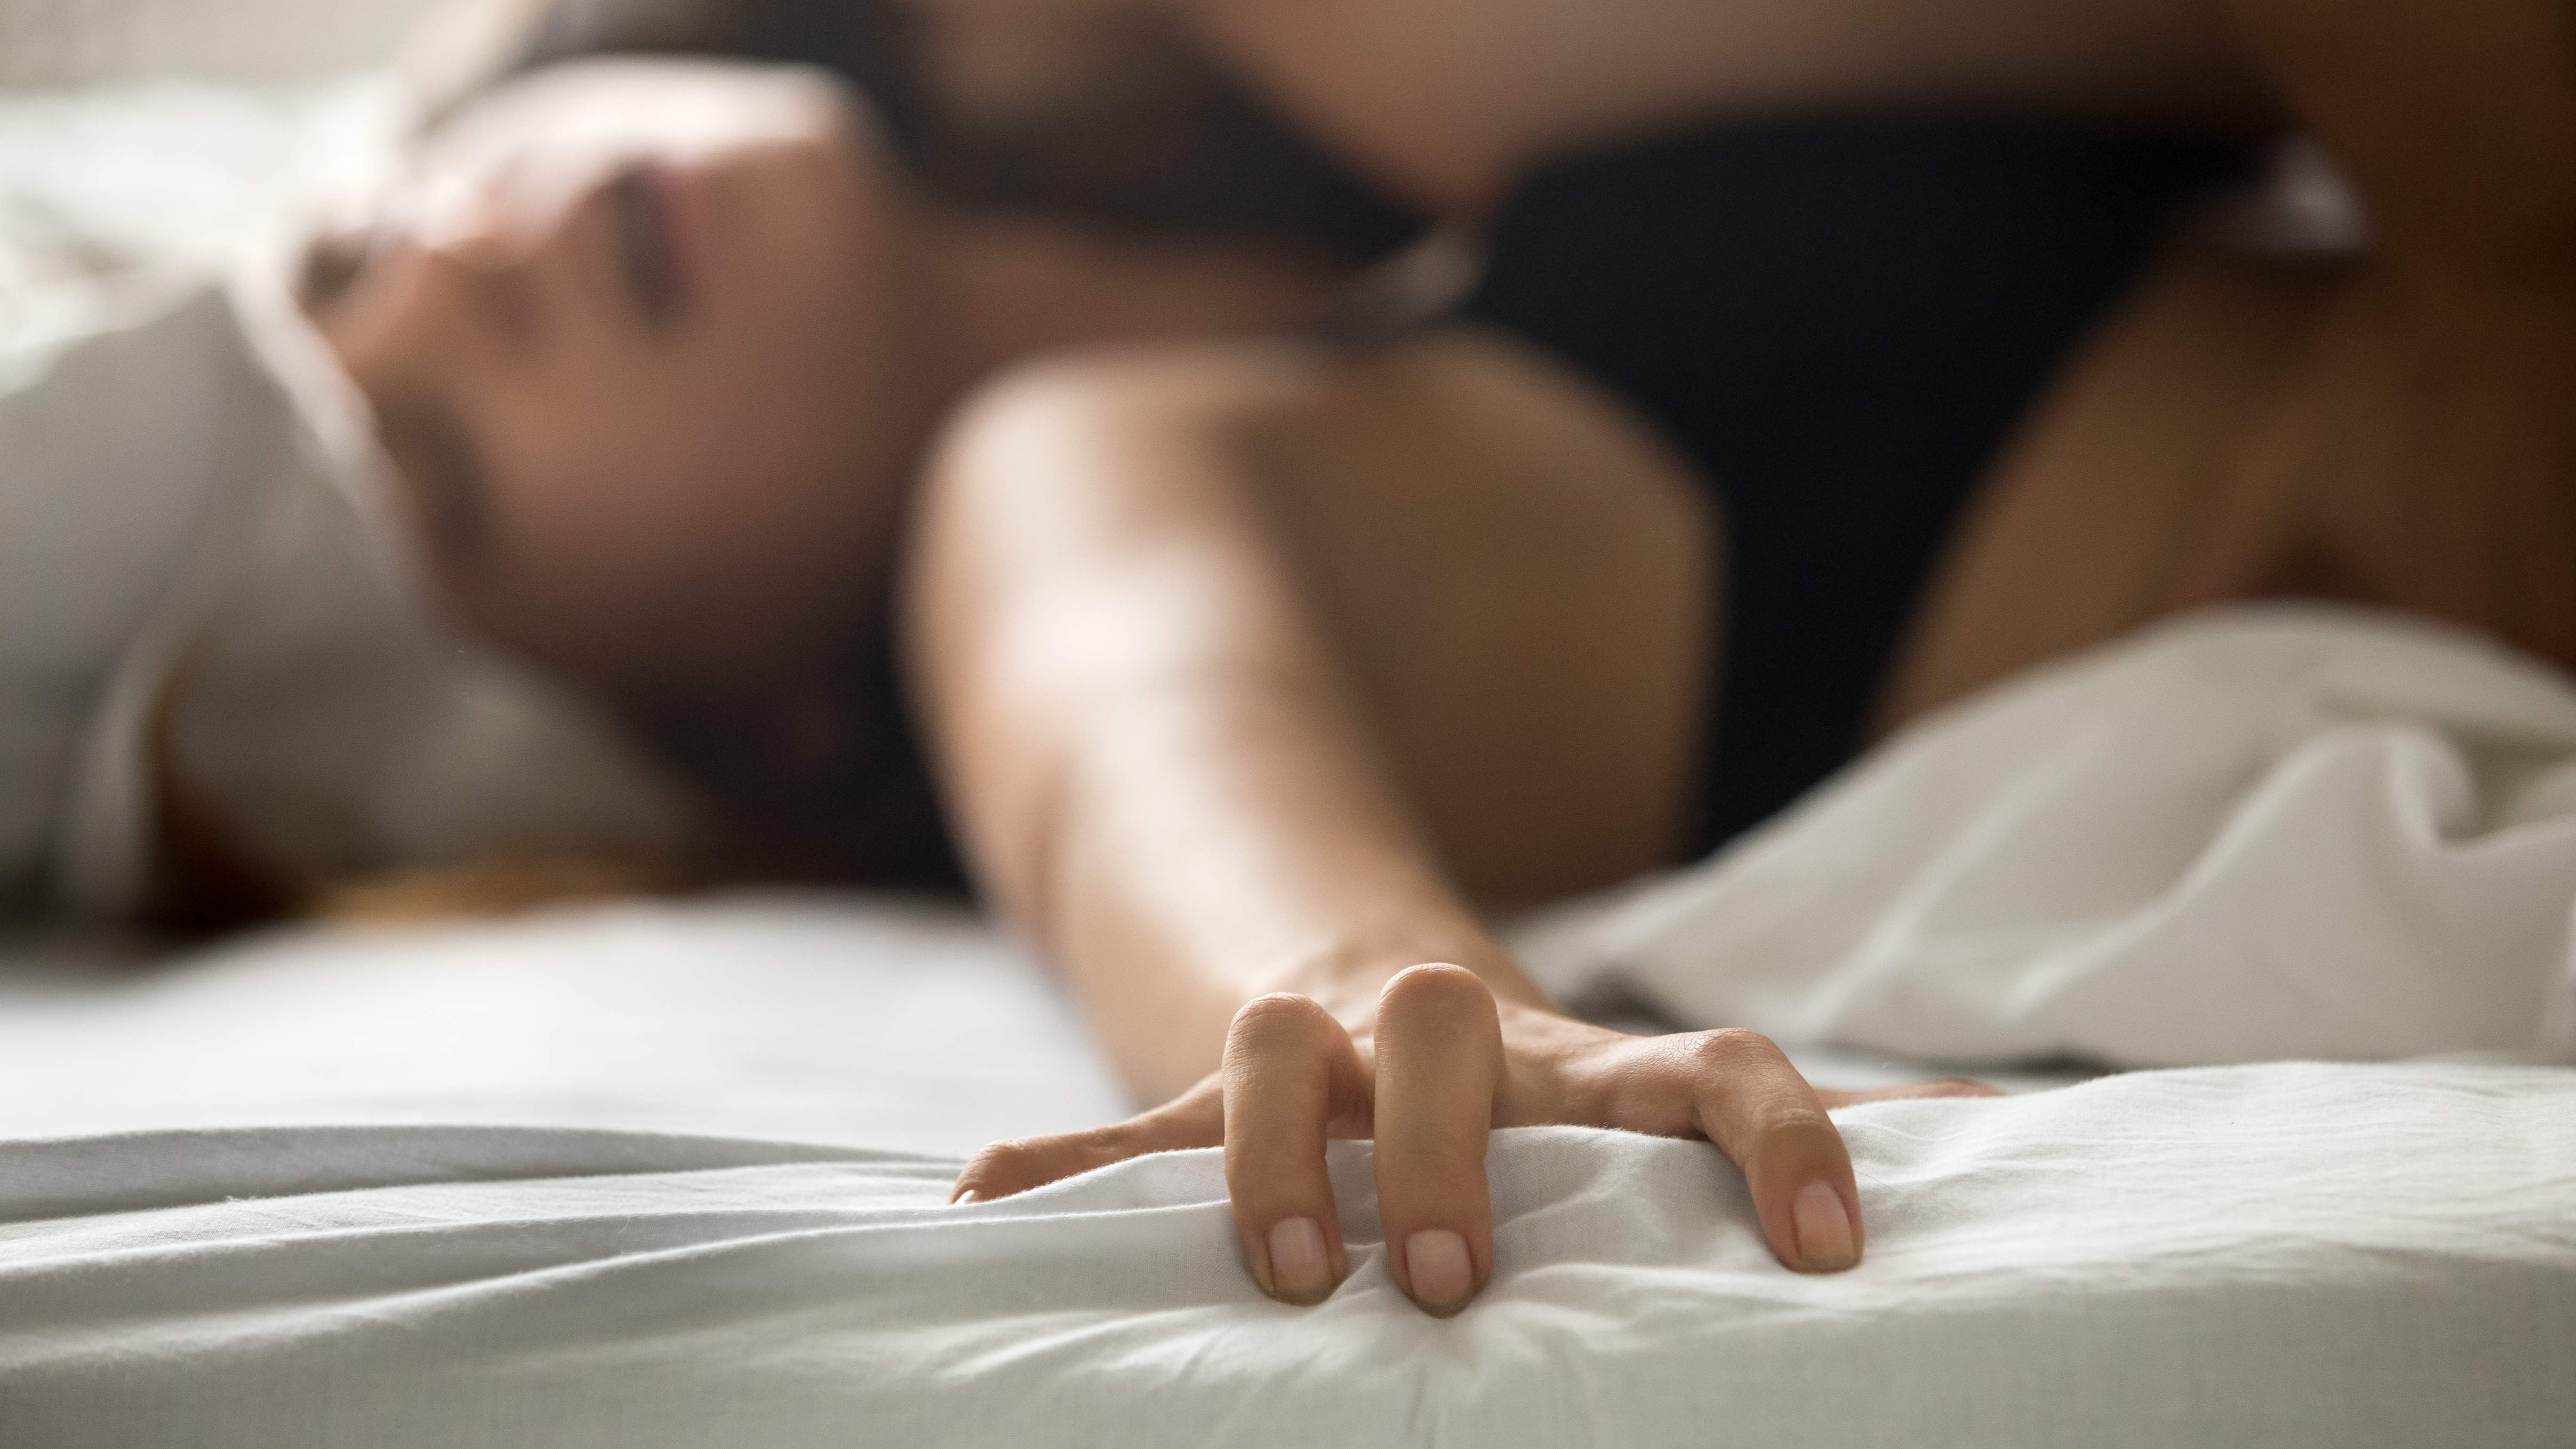 5 Fingers In Pussy this woman couldn't have sex because she had a 'dead end